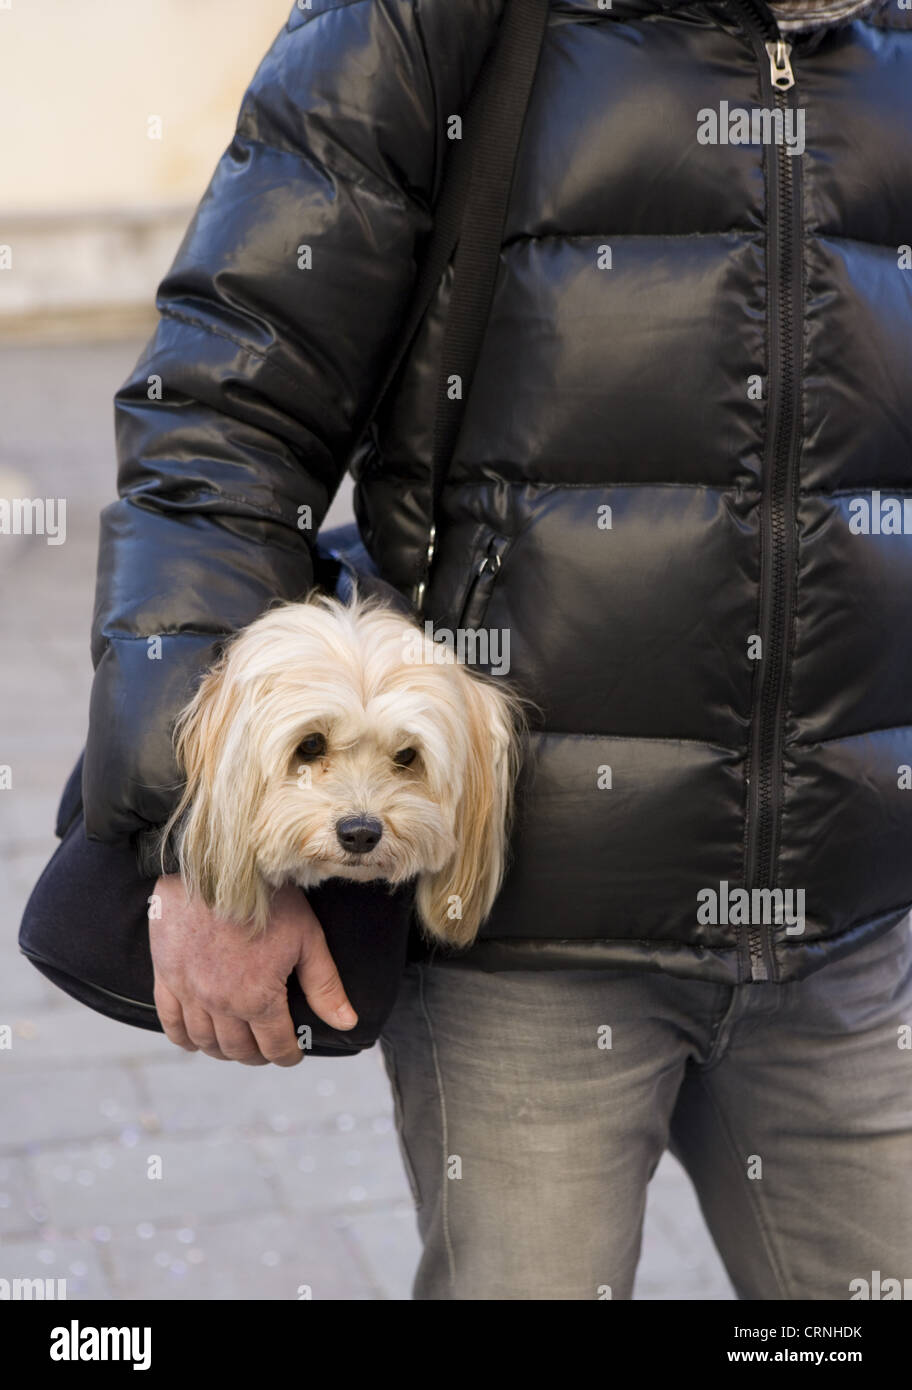 Domestic Dog, Shih Tzu, adult, being carried in bag by owner, Italy, february - Stock Image